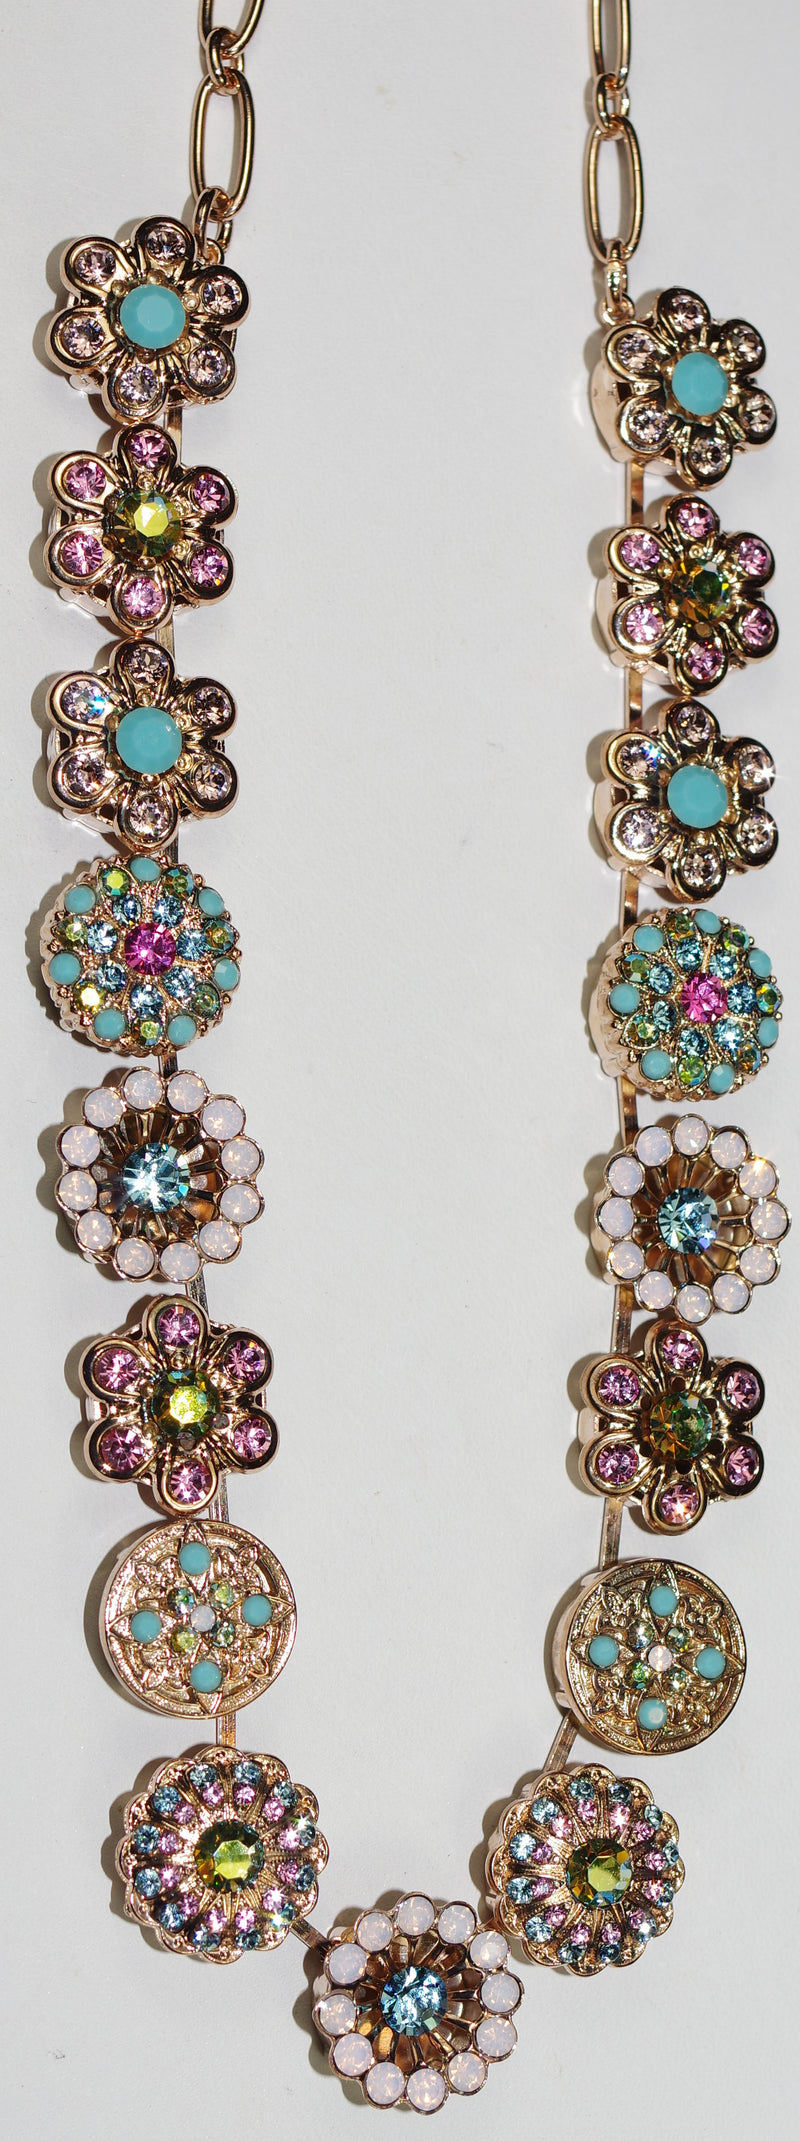 "MARIANA NECKLACE SUMMER FUN: pink, blue, fuschia stones in rose gold setting, charms = 5/8"", 16"" adjustable chain"